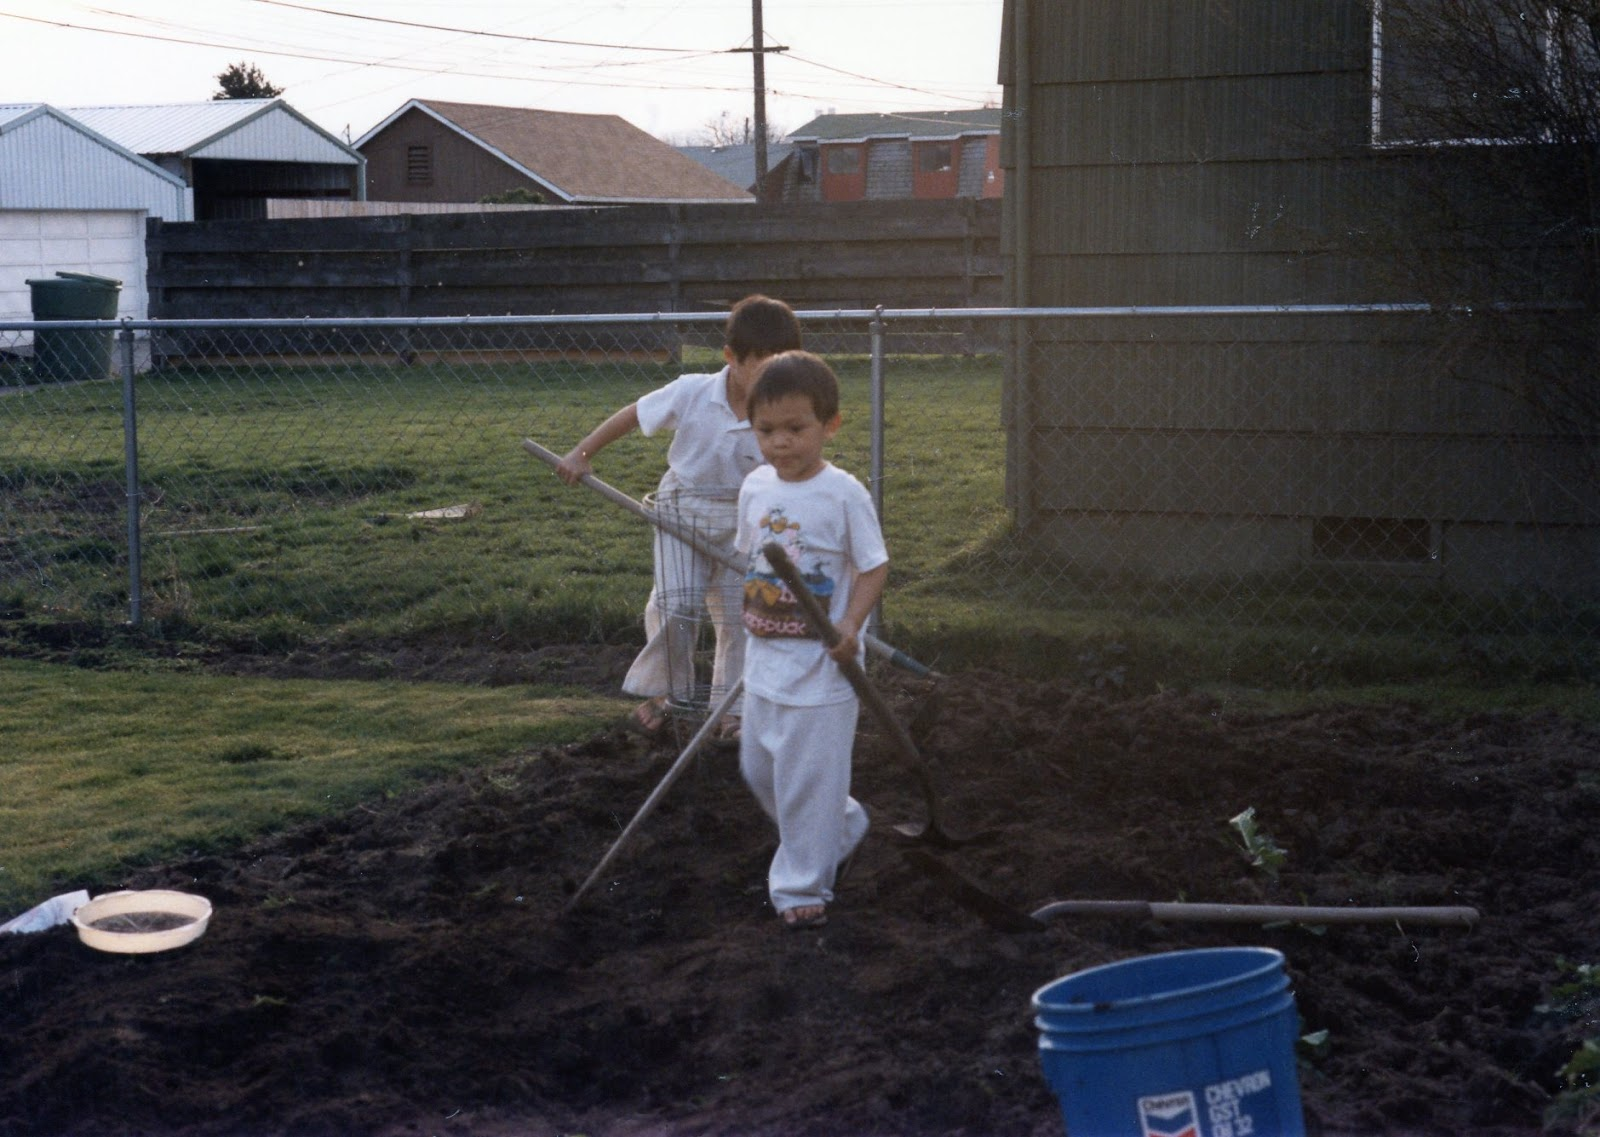 David and his brother as kids in the yard.